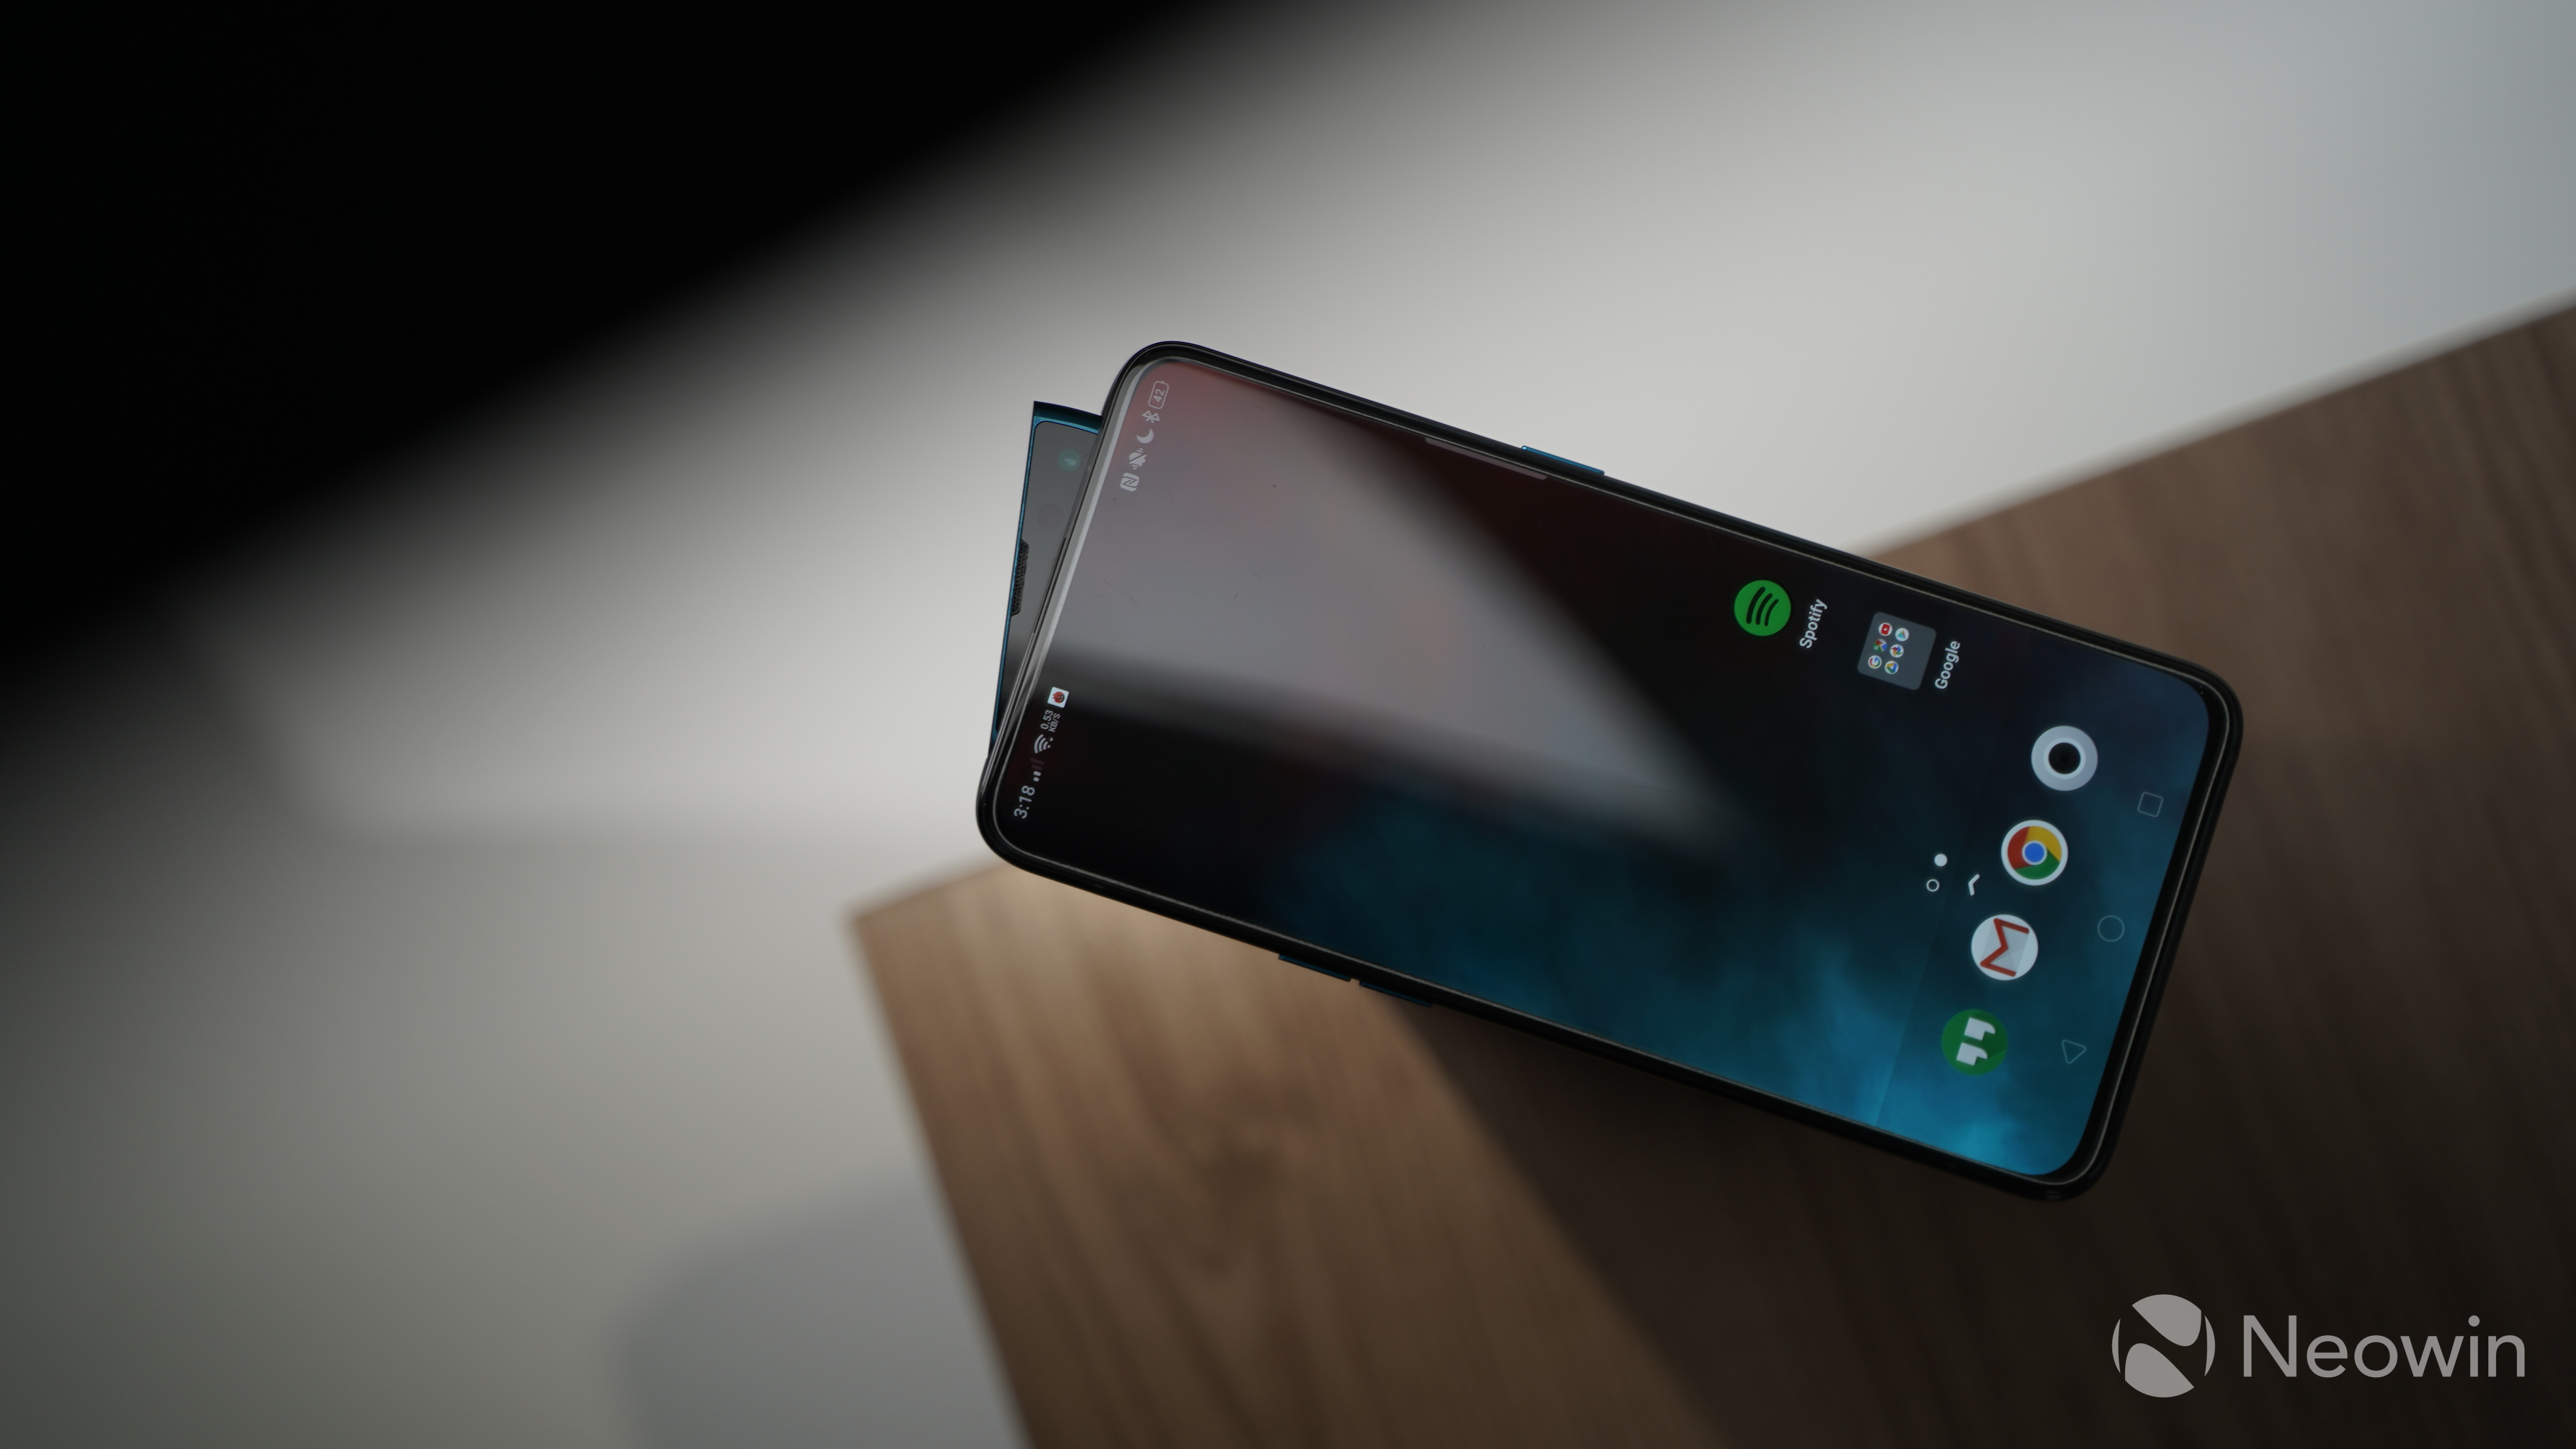 OPPO Reno 10x Zoom review: Jack of all trades, master of